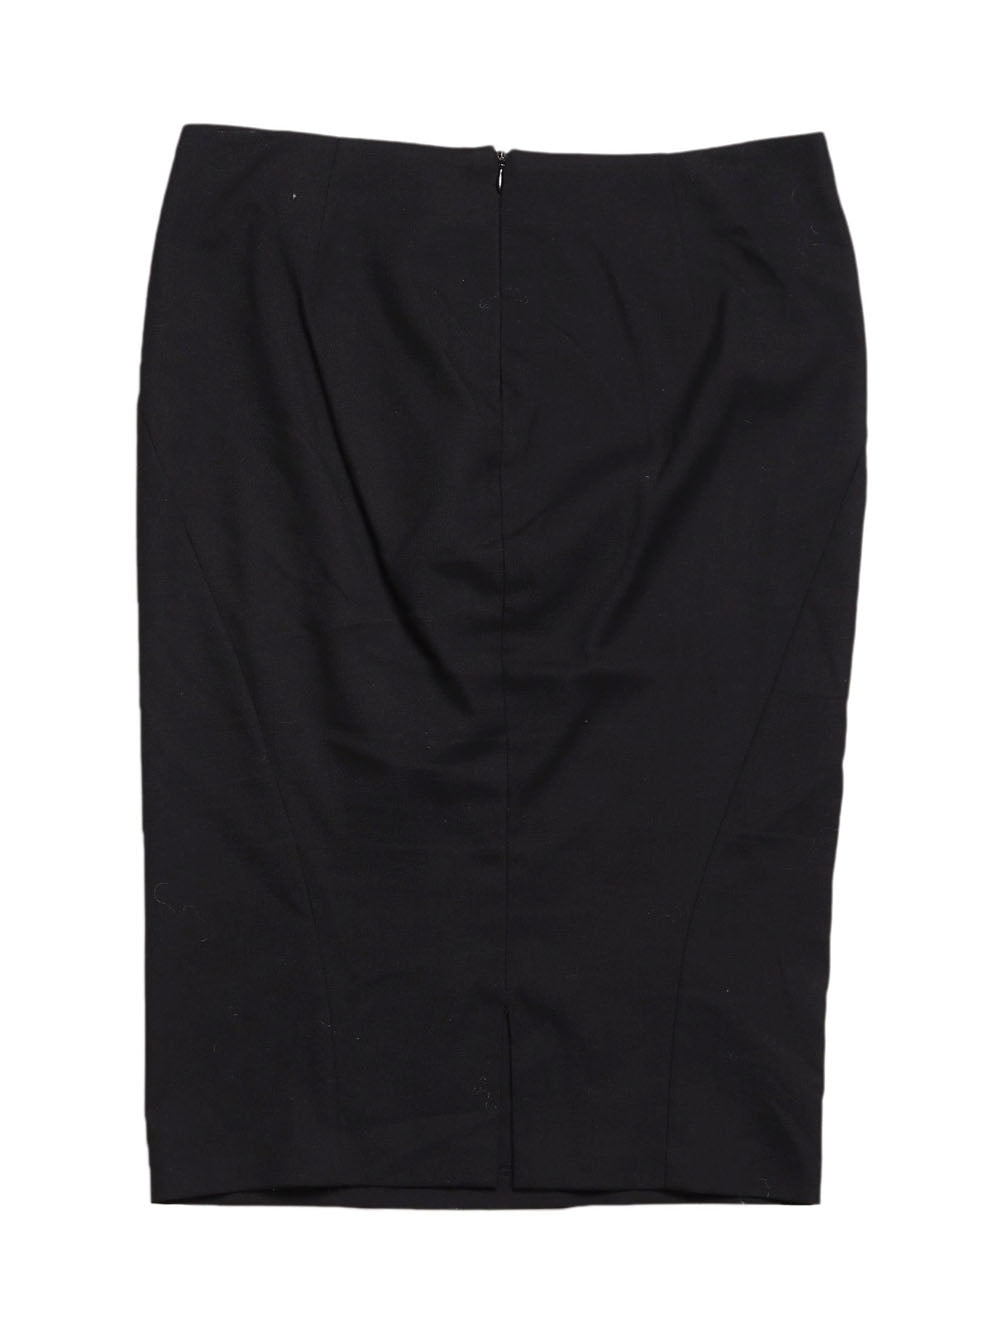 Back photo of Preloved Sisley Black Woman's skirt - size 8/S